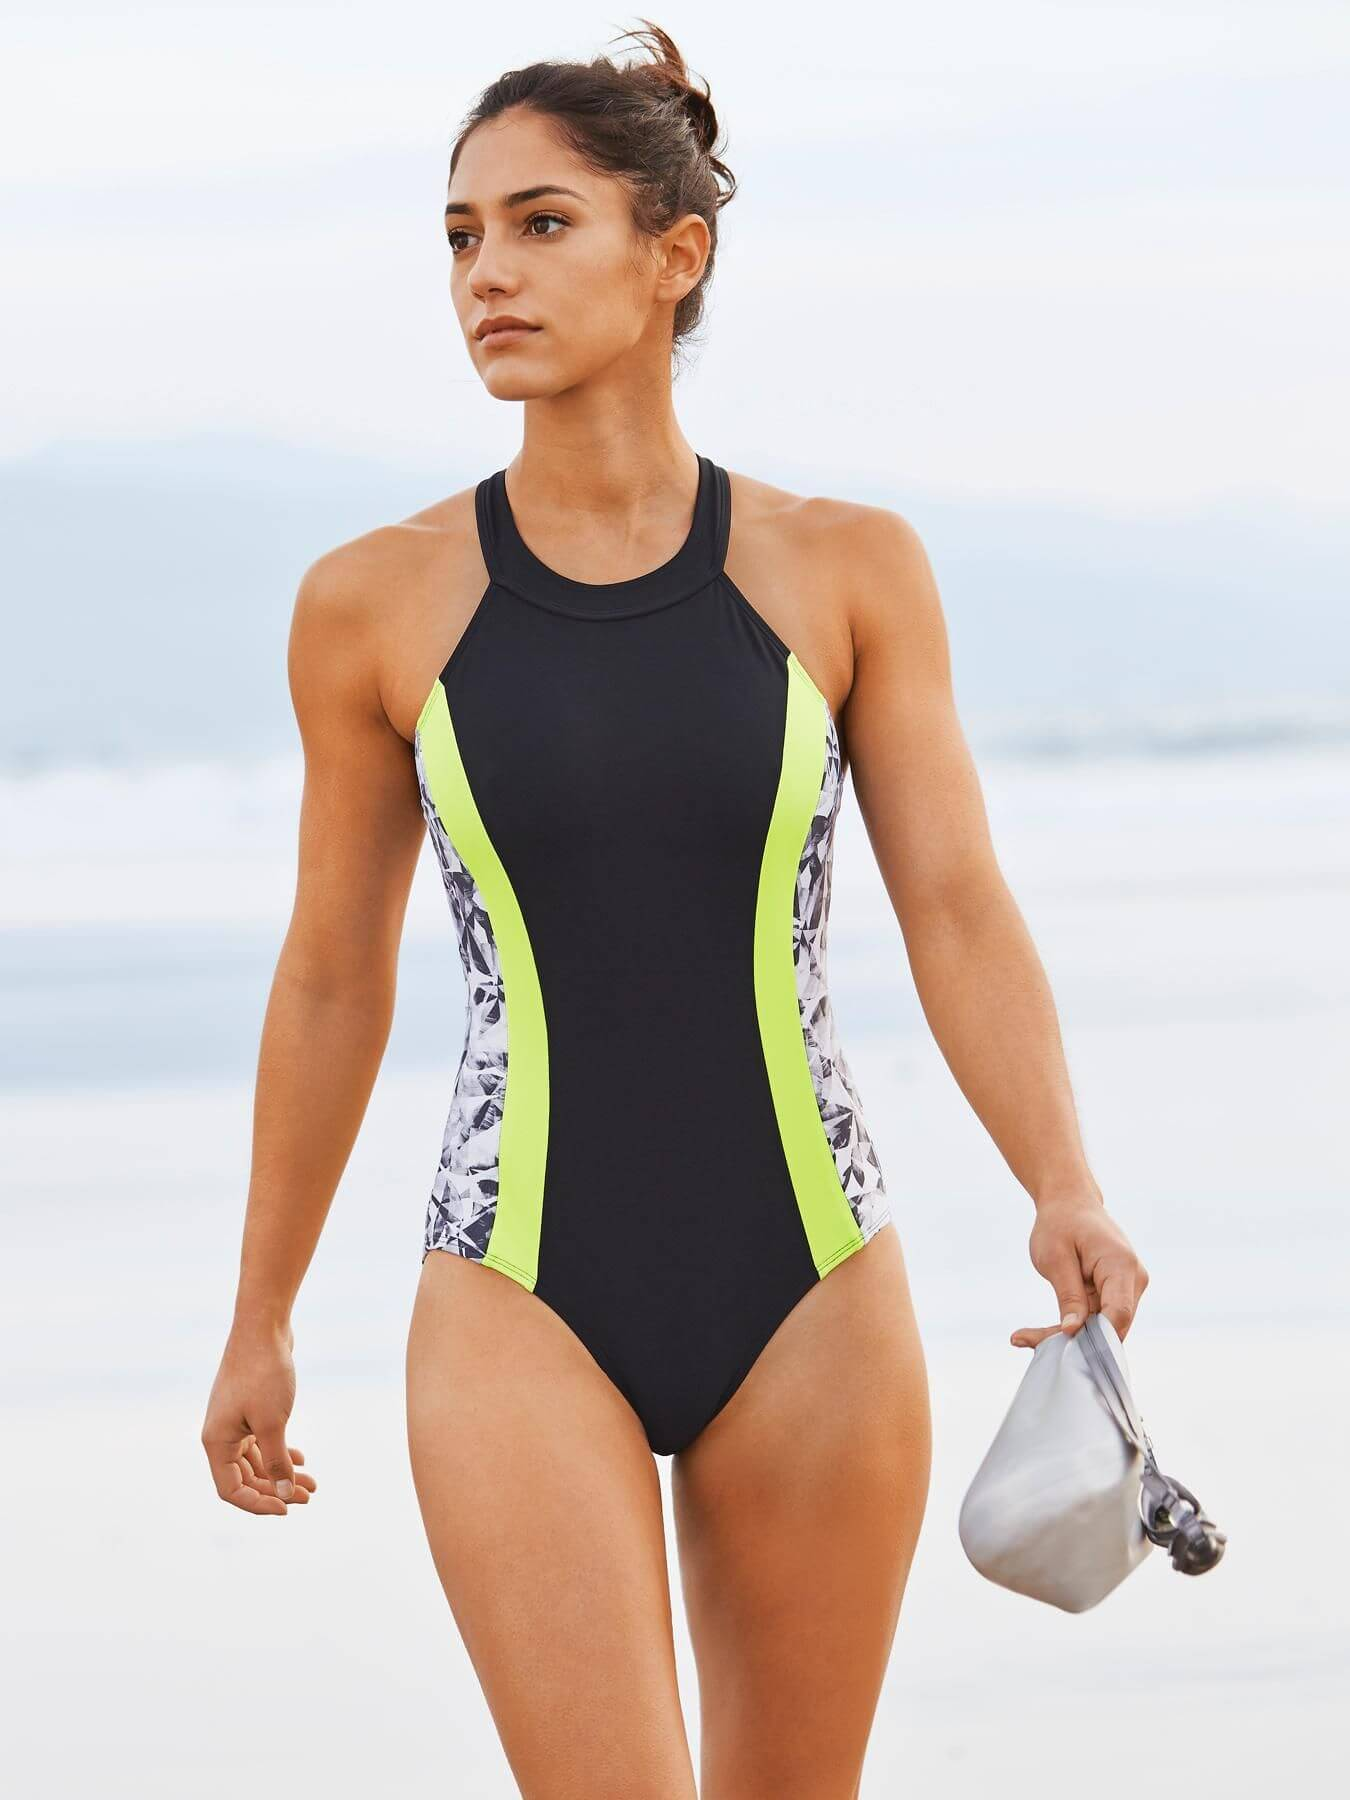 Allison Stokke on Black Swimming Costume